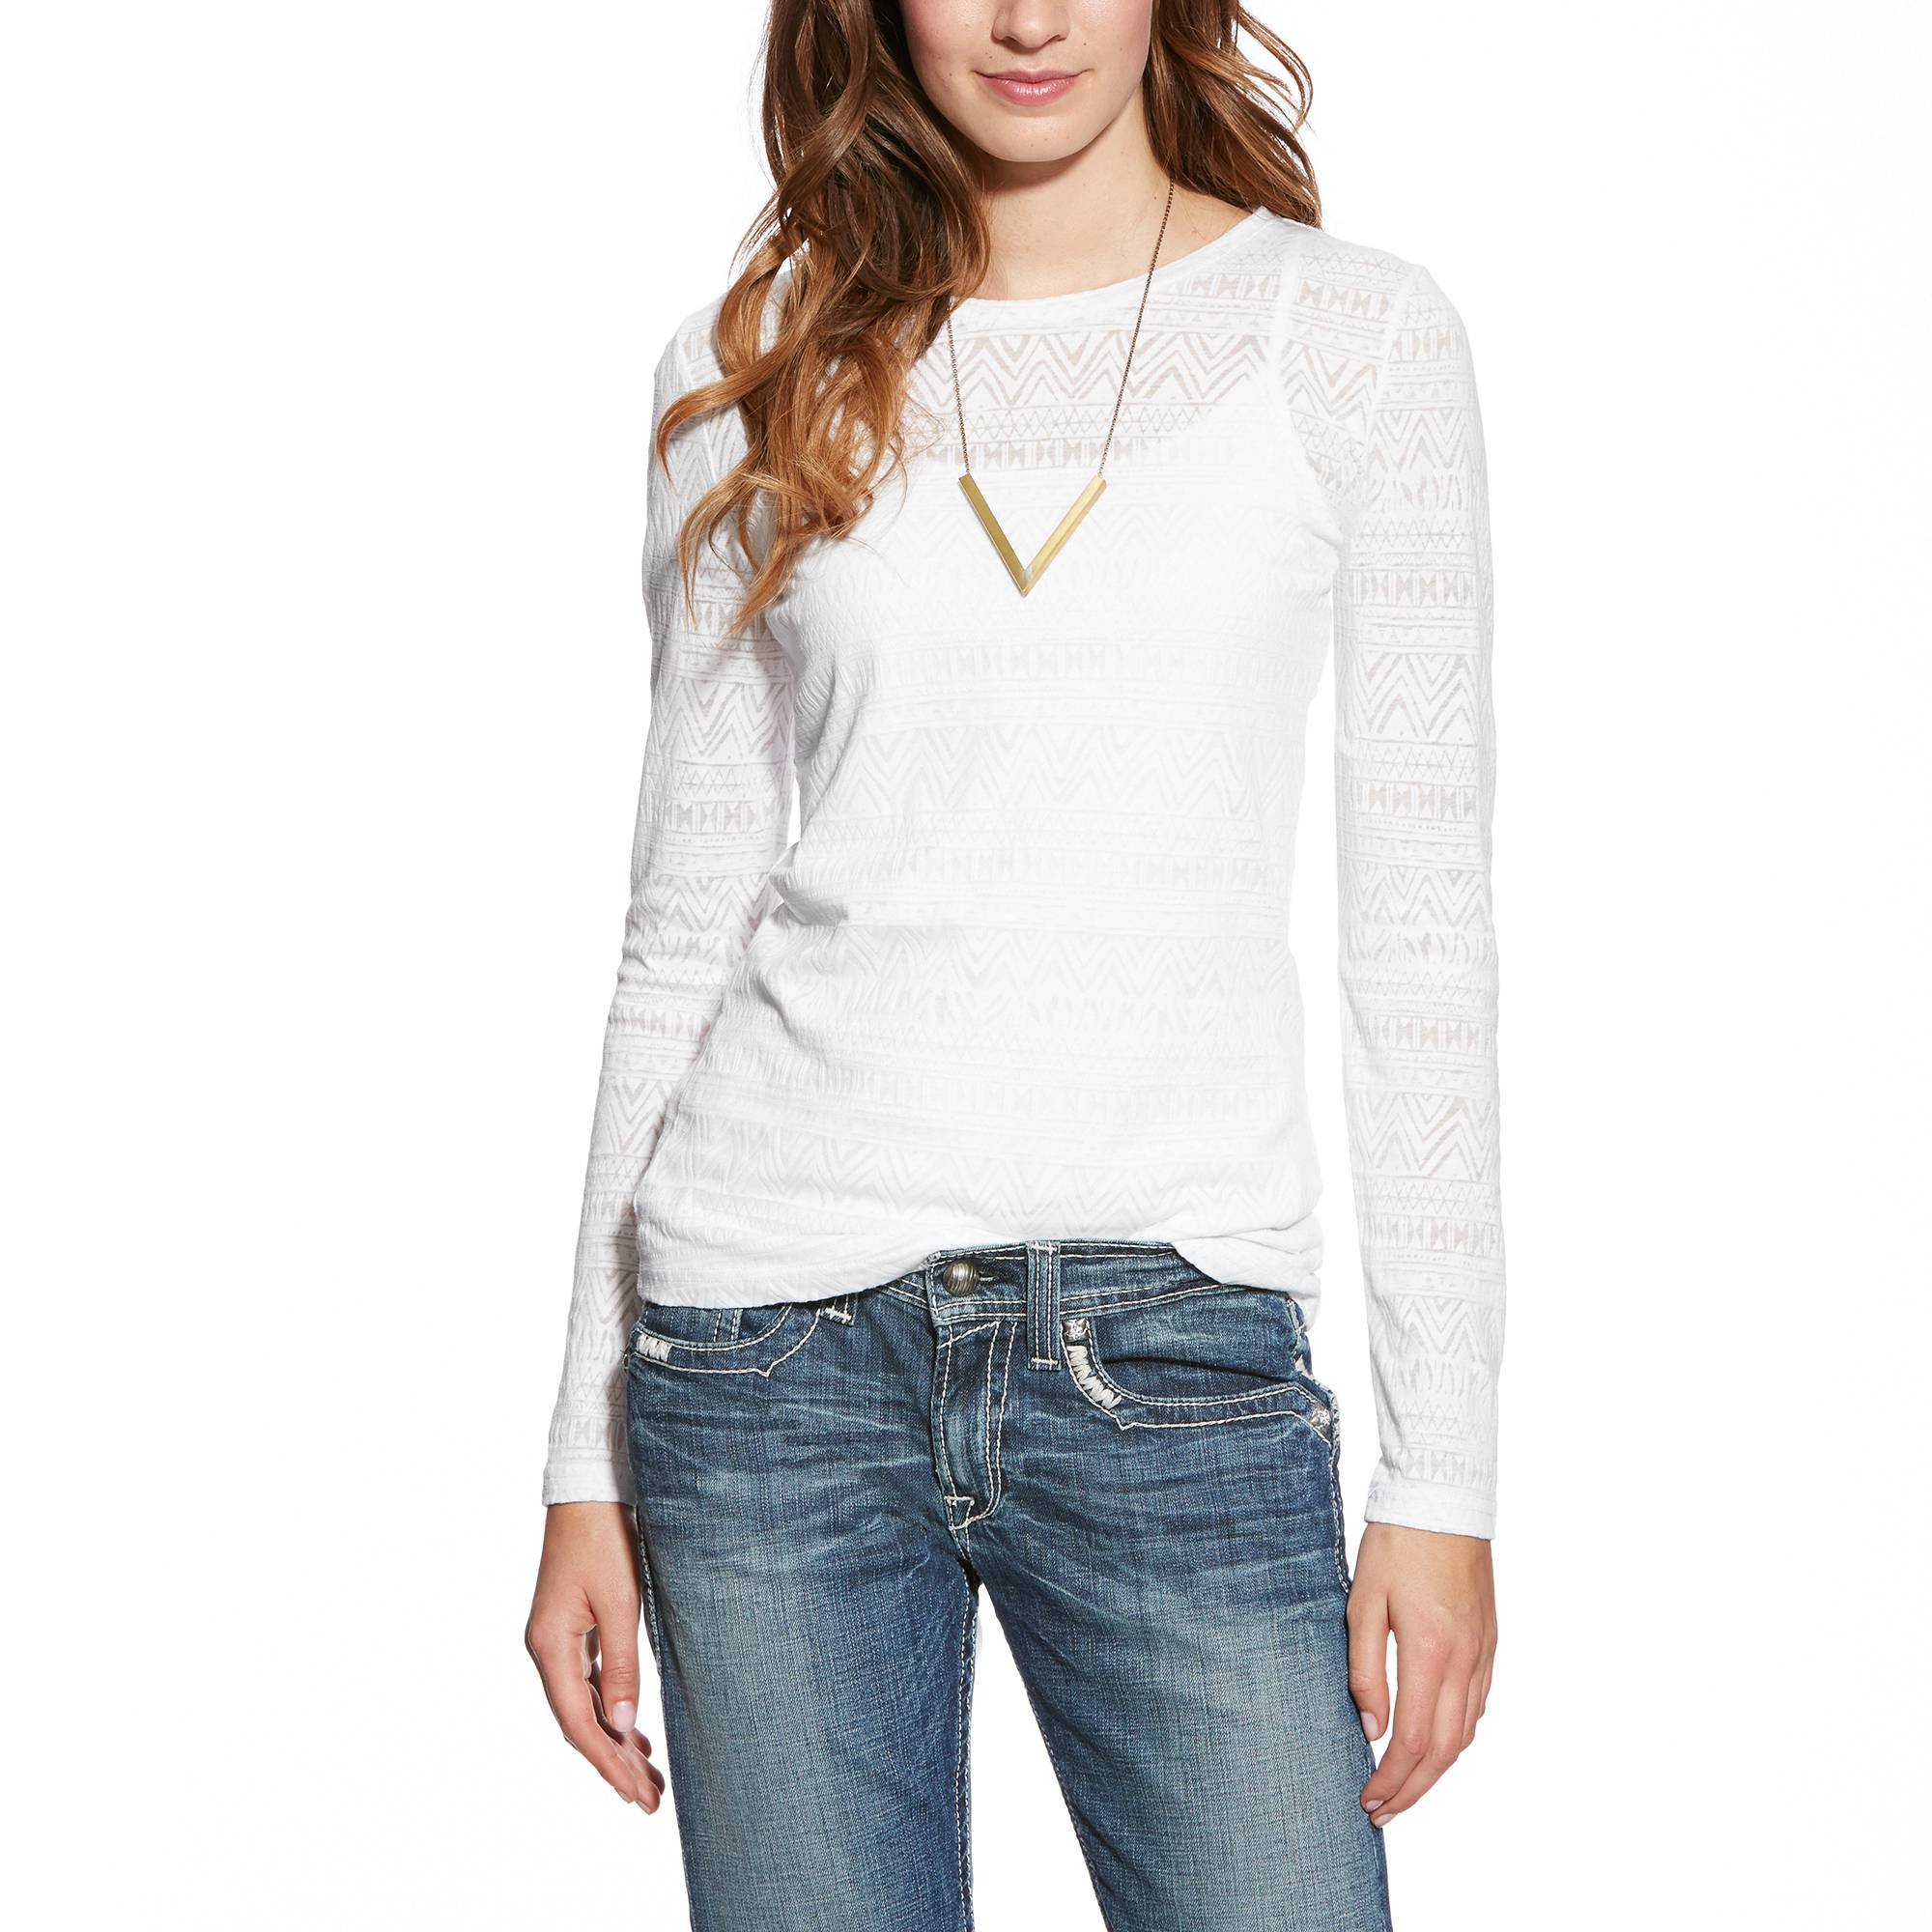 Ariat Women's Aztec Burn Out Top